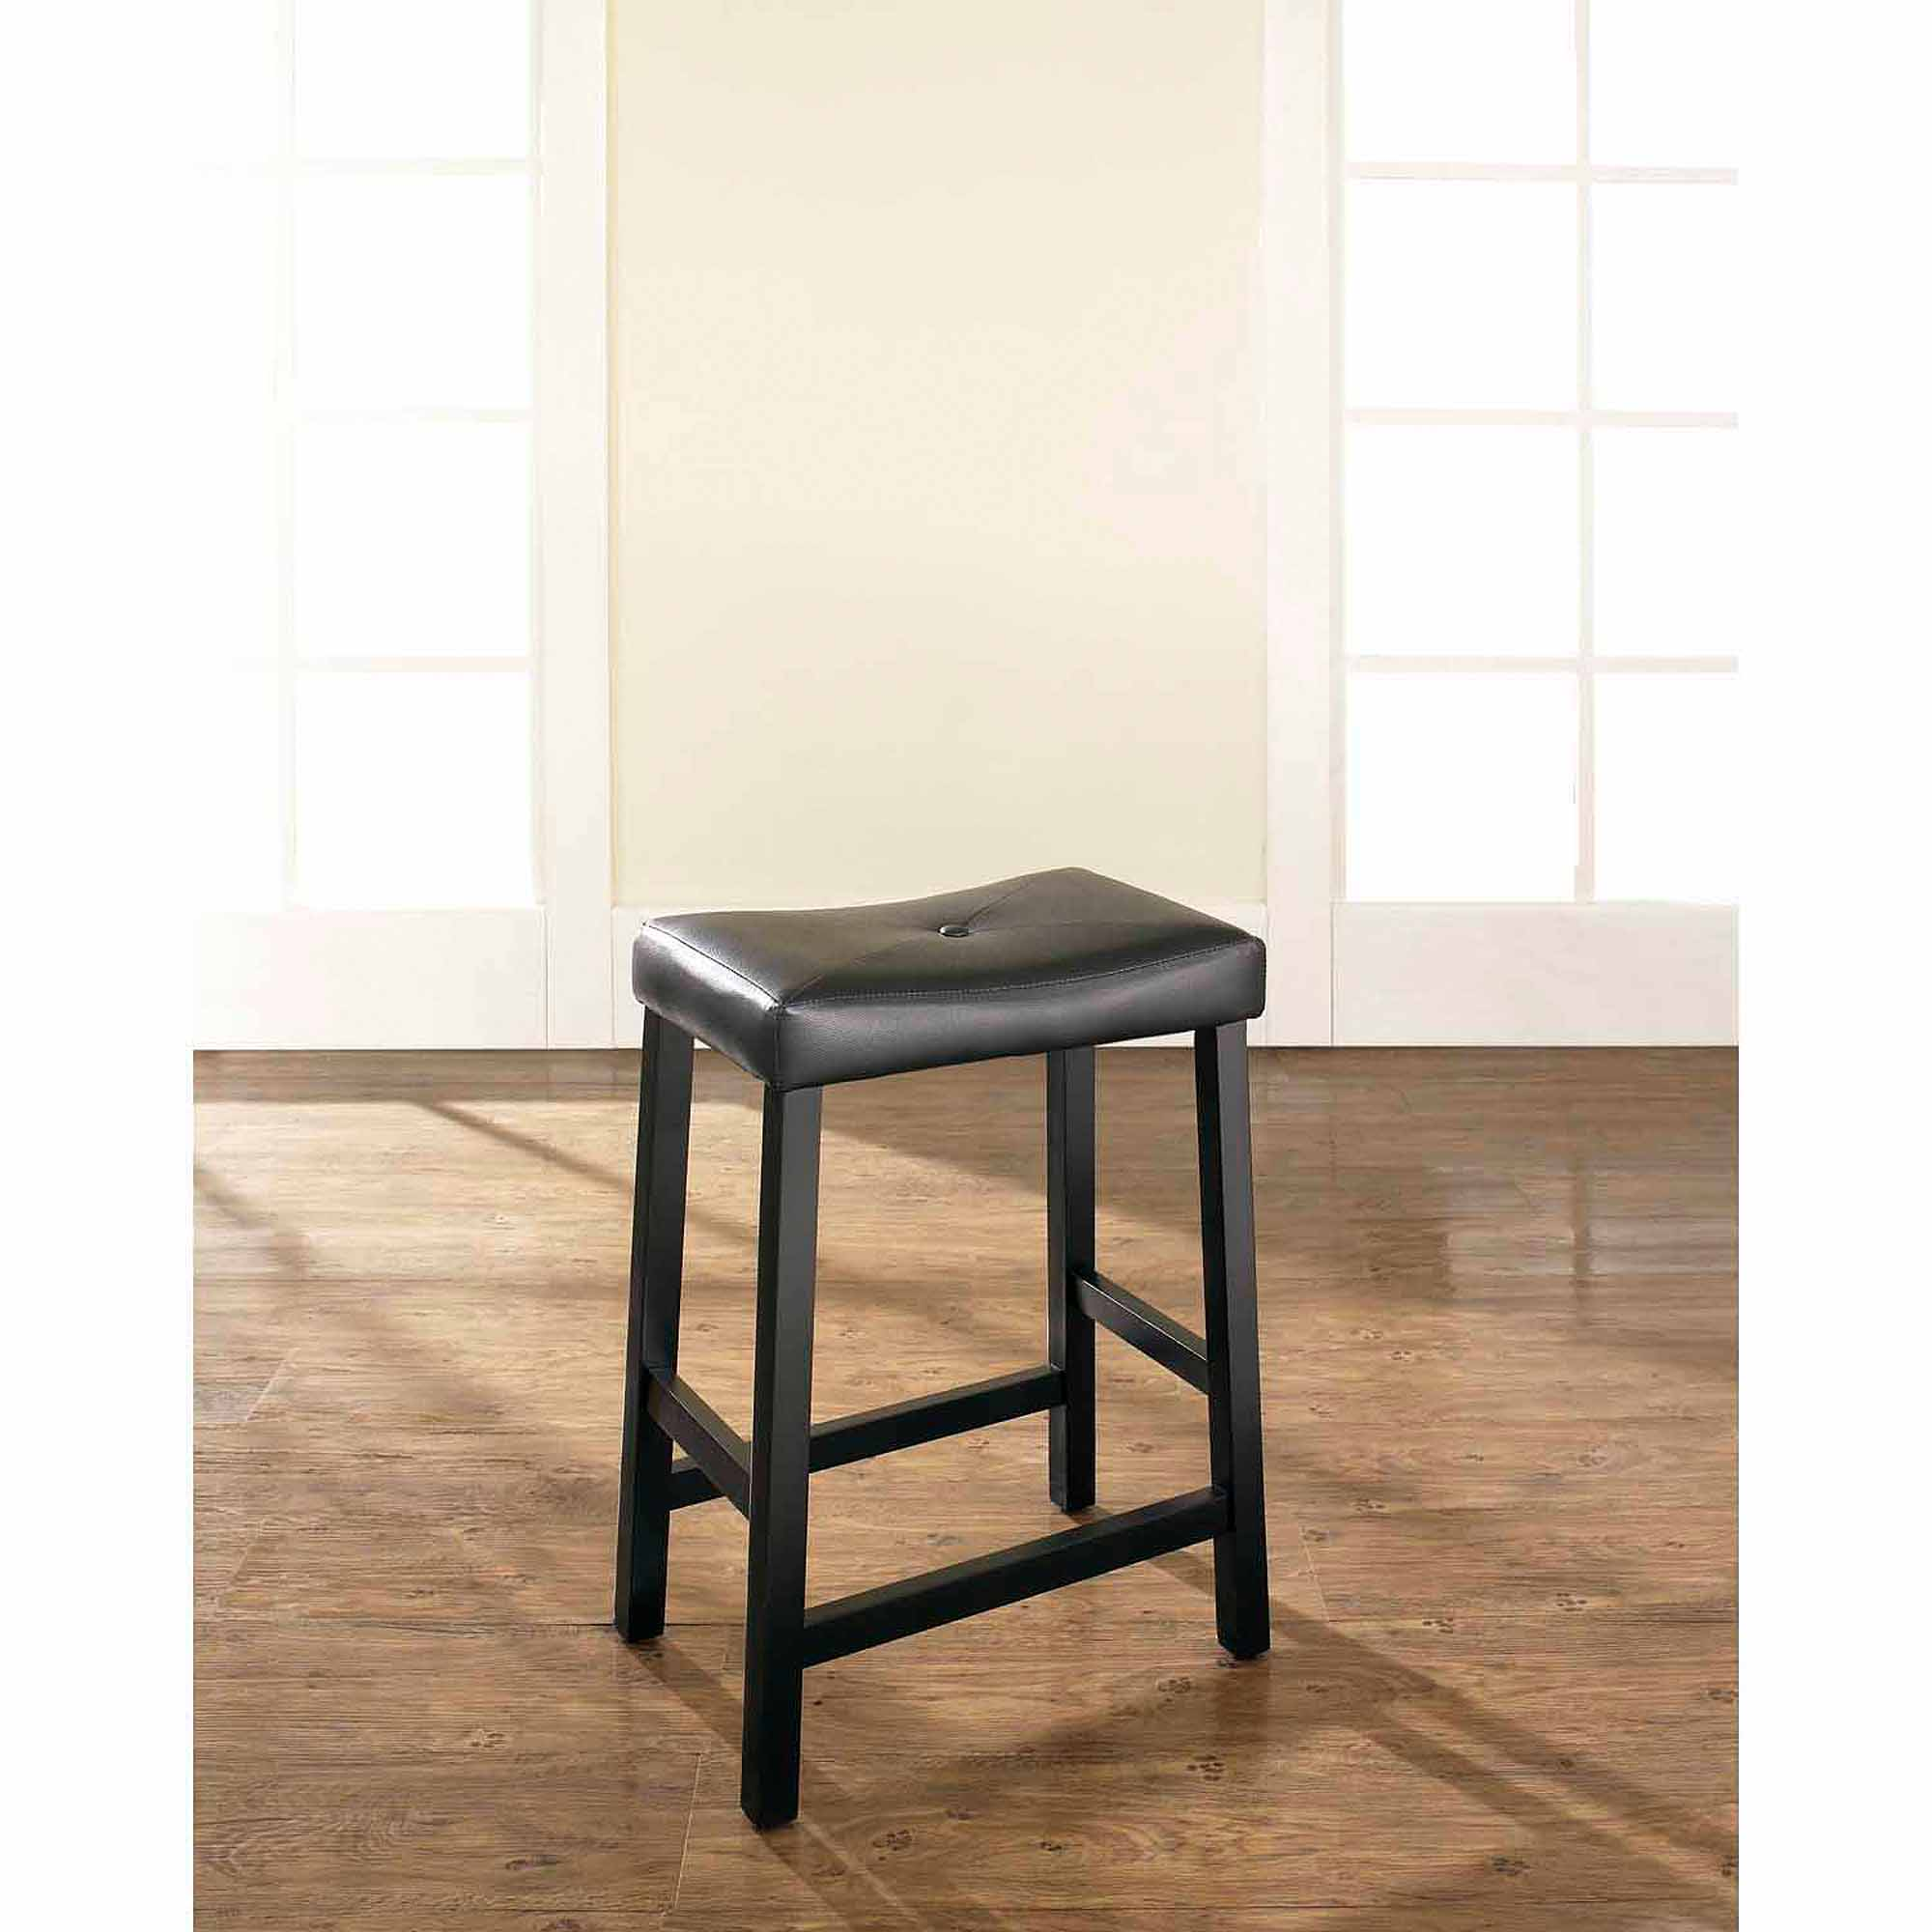 Crosley Furniture Upholstered Saddle Seat Bar Stool with 24  Seat Height ...  sc 1 st  Walmart & Crosley Furniture Upholstered Saddle Seat Bar Stool with 24